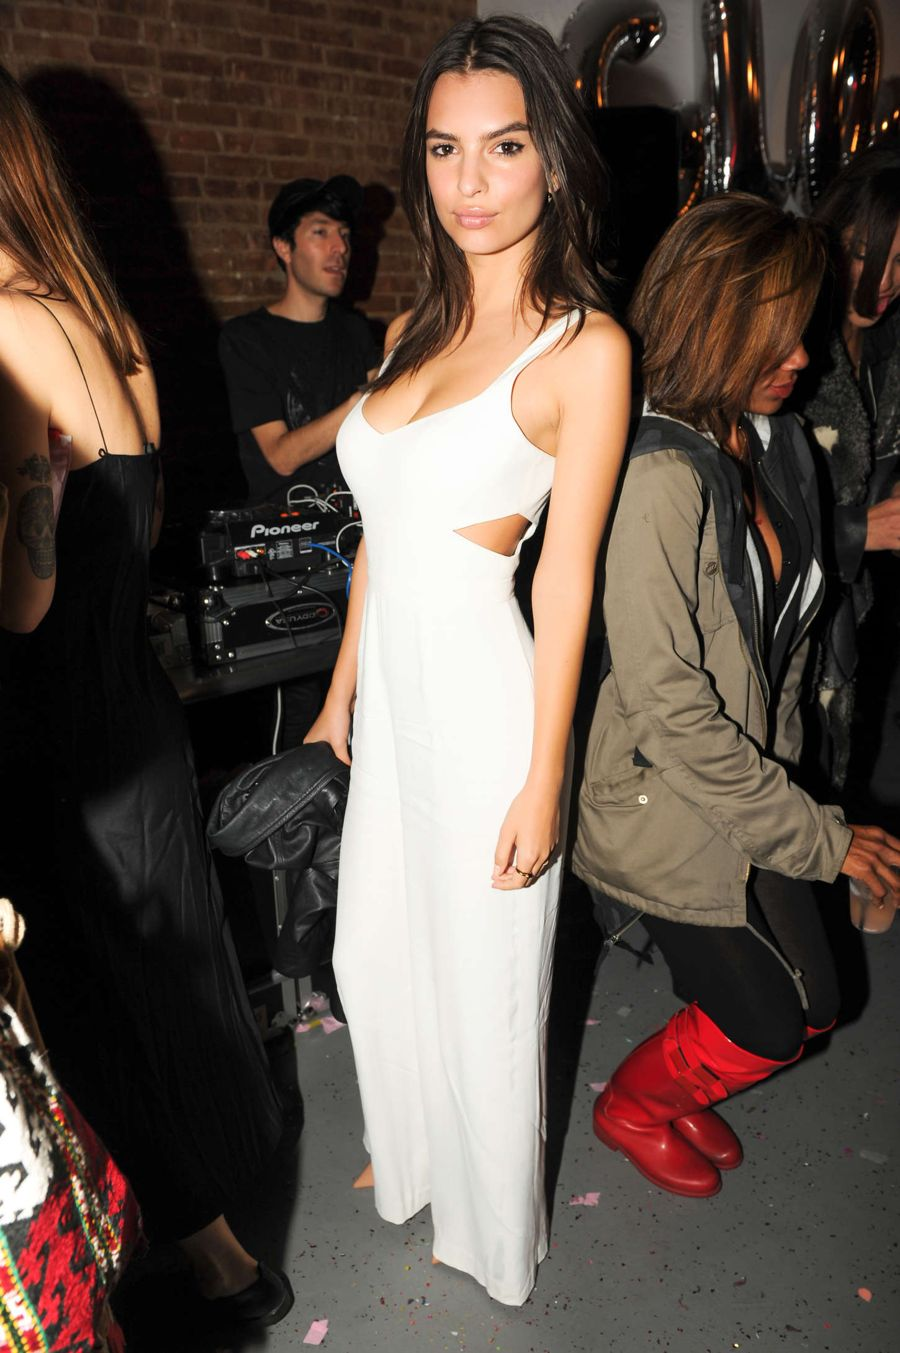 Emily Ratajkowski - GLOSSIER Launch Party in NY